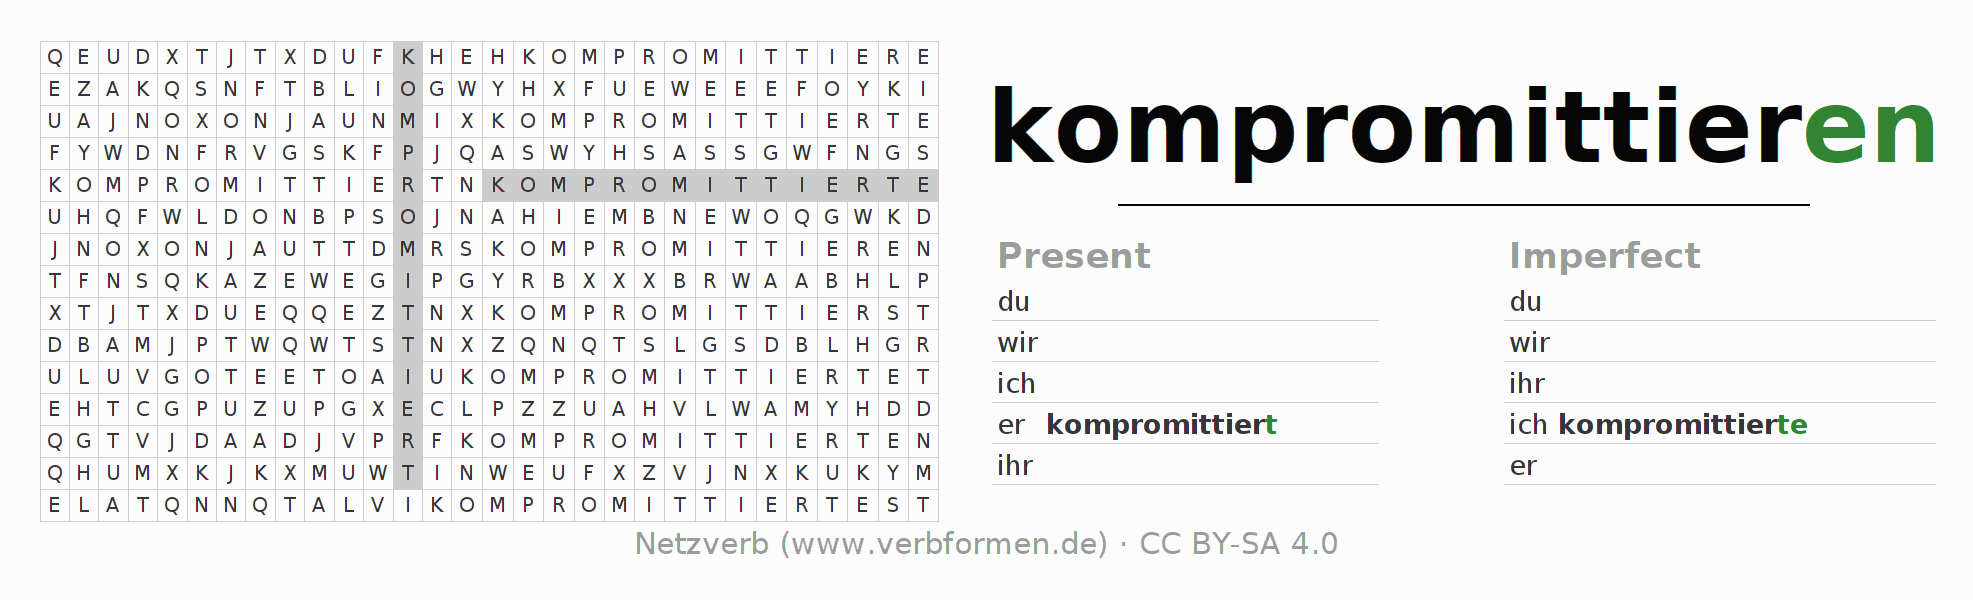 Word search puzzle for the conjugation of the verb kompromittieren